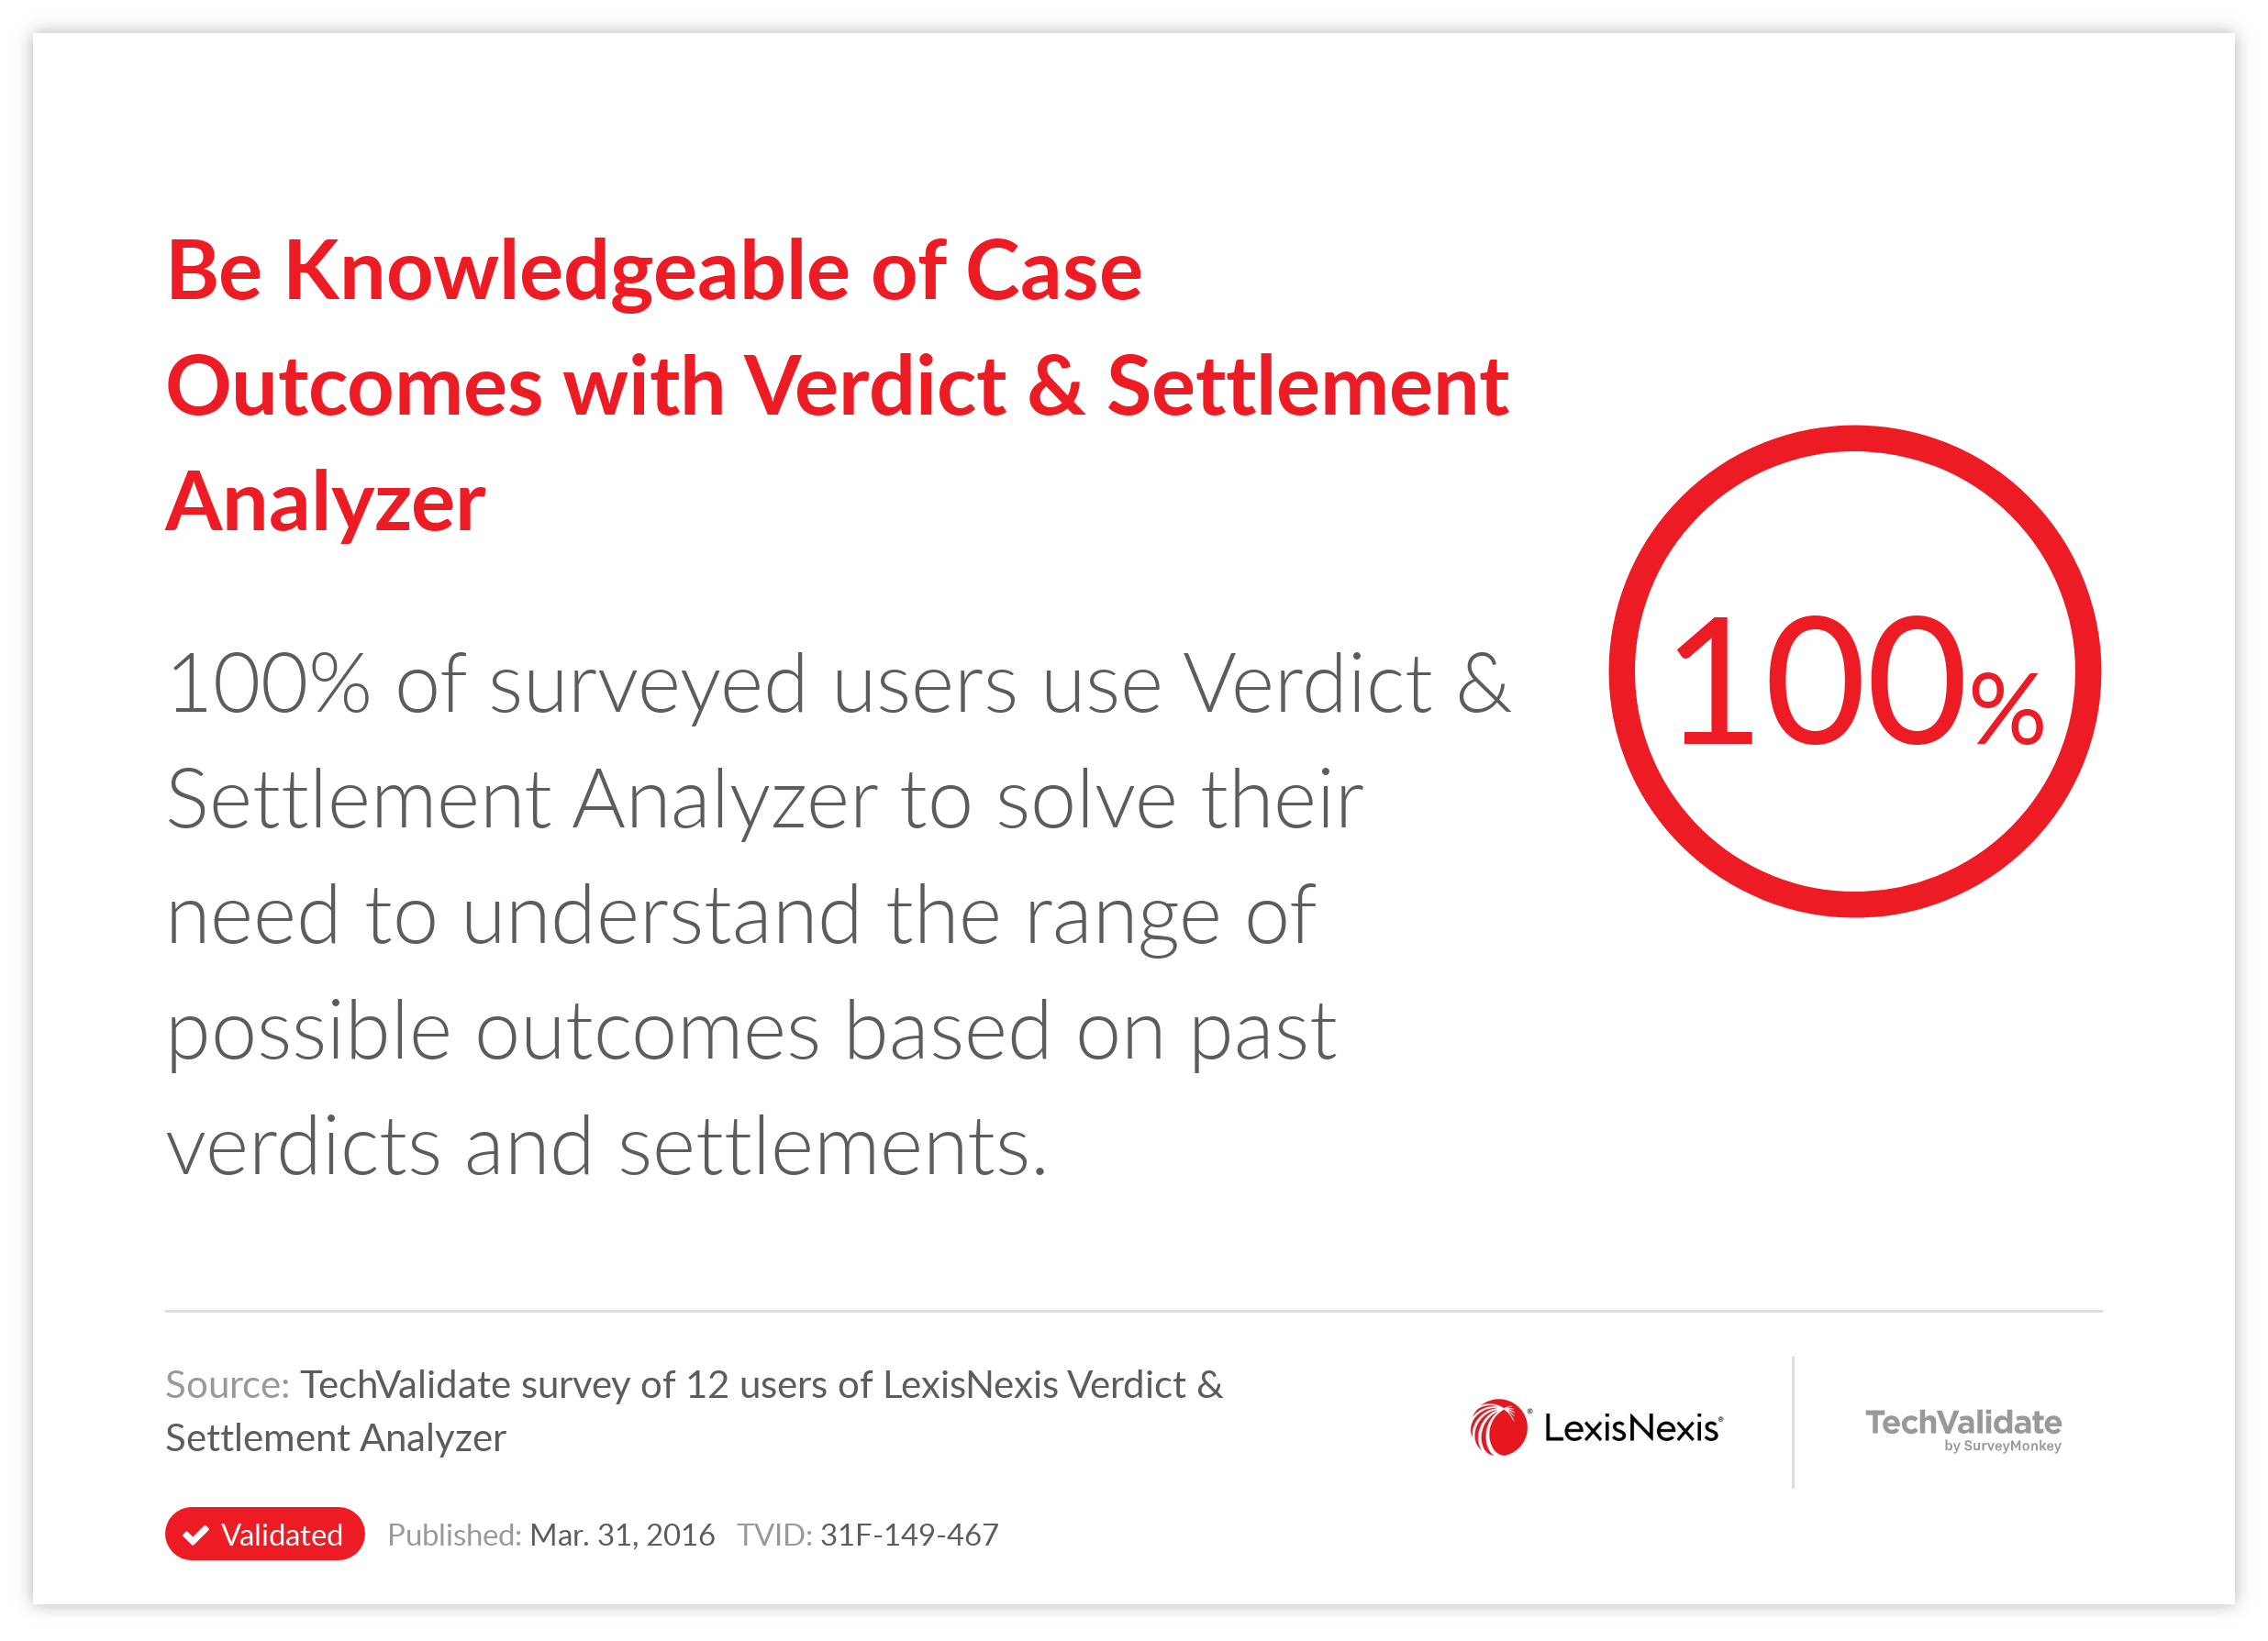 Be Knowledgeable of Case Outcomes with Verdict & Settlement Analyzer